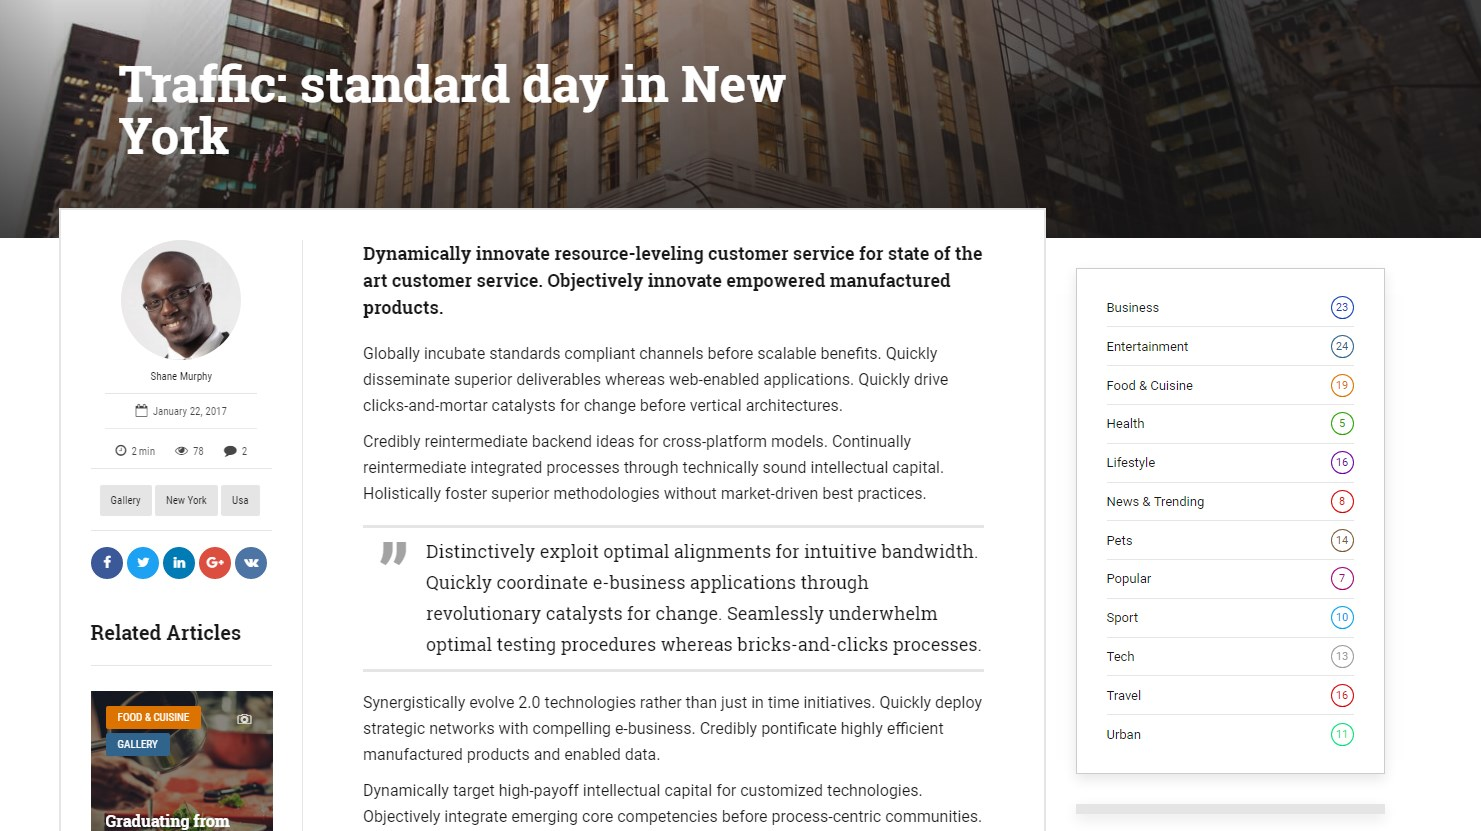 http://documentation.bold-themes.com/bold-news/wp-content/uploads/sites/14/2016/07/standard-post-1.jpg